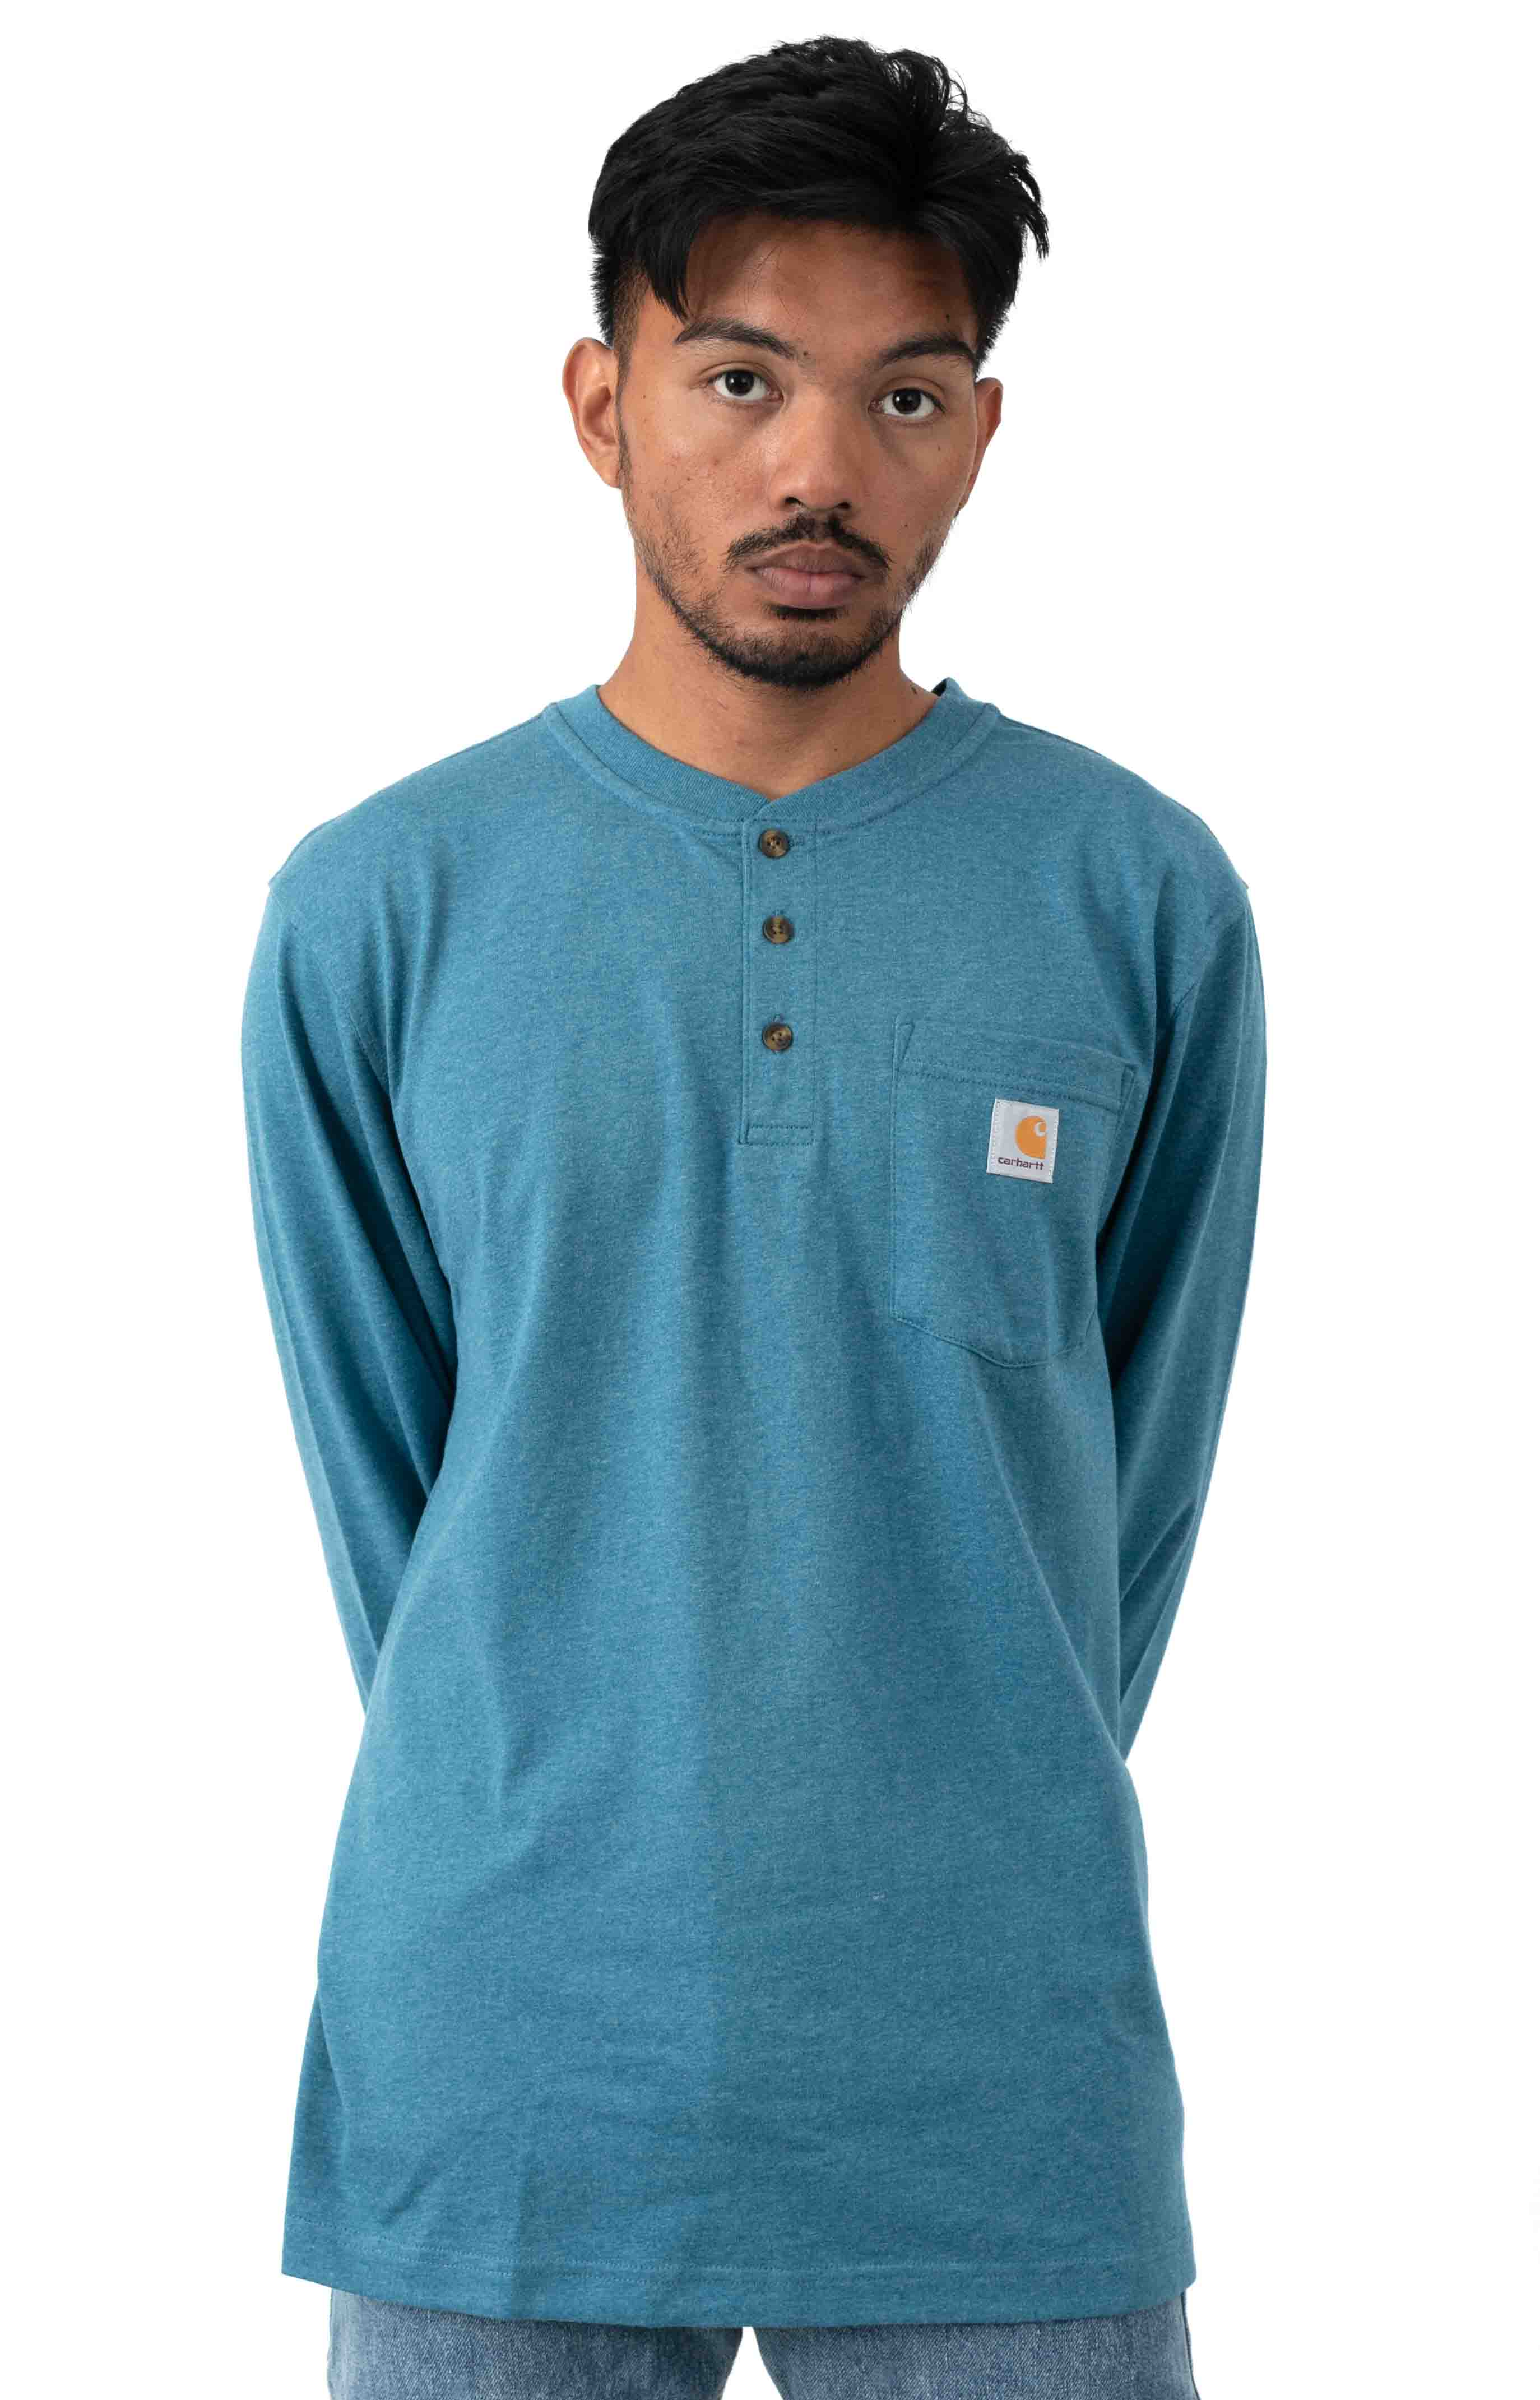 (K128) L/S Workwear Henley - Ocean Blue Heather